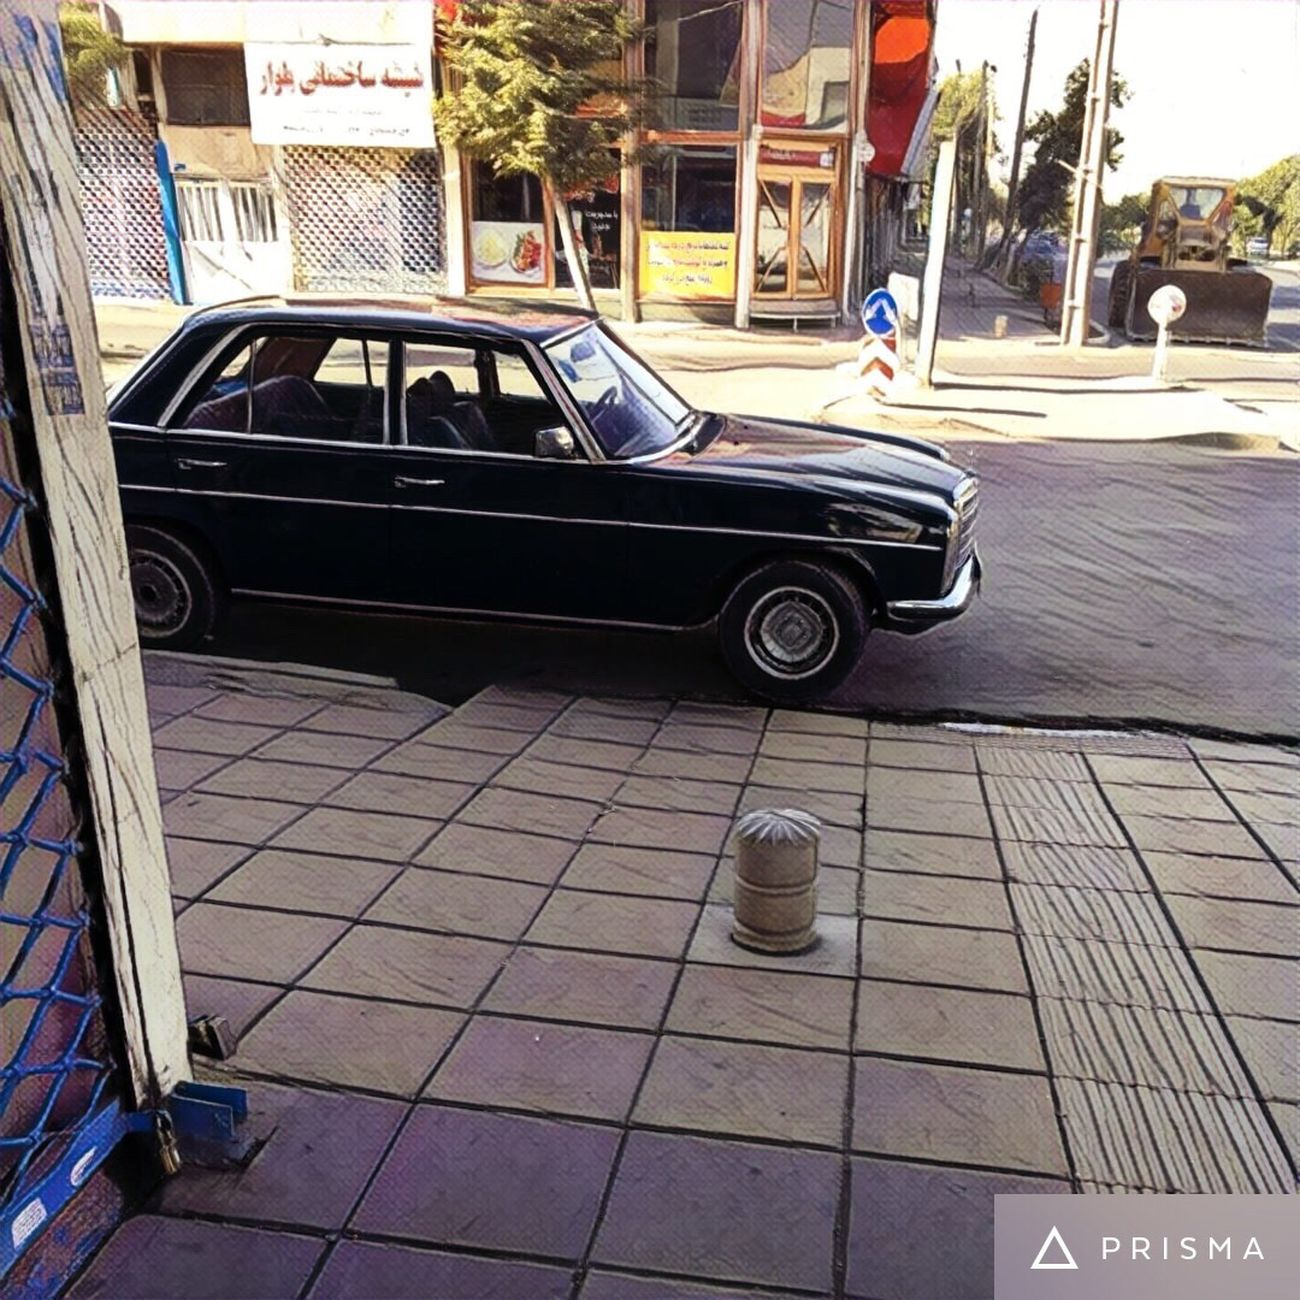 ISight IPhone 6s Iphonephotography IPhoneography Prisma Mercedes Mercedes-Benz Iran Snapseed Streetphotography Karaj Alborz